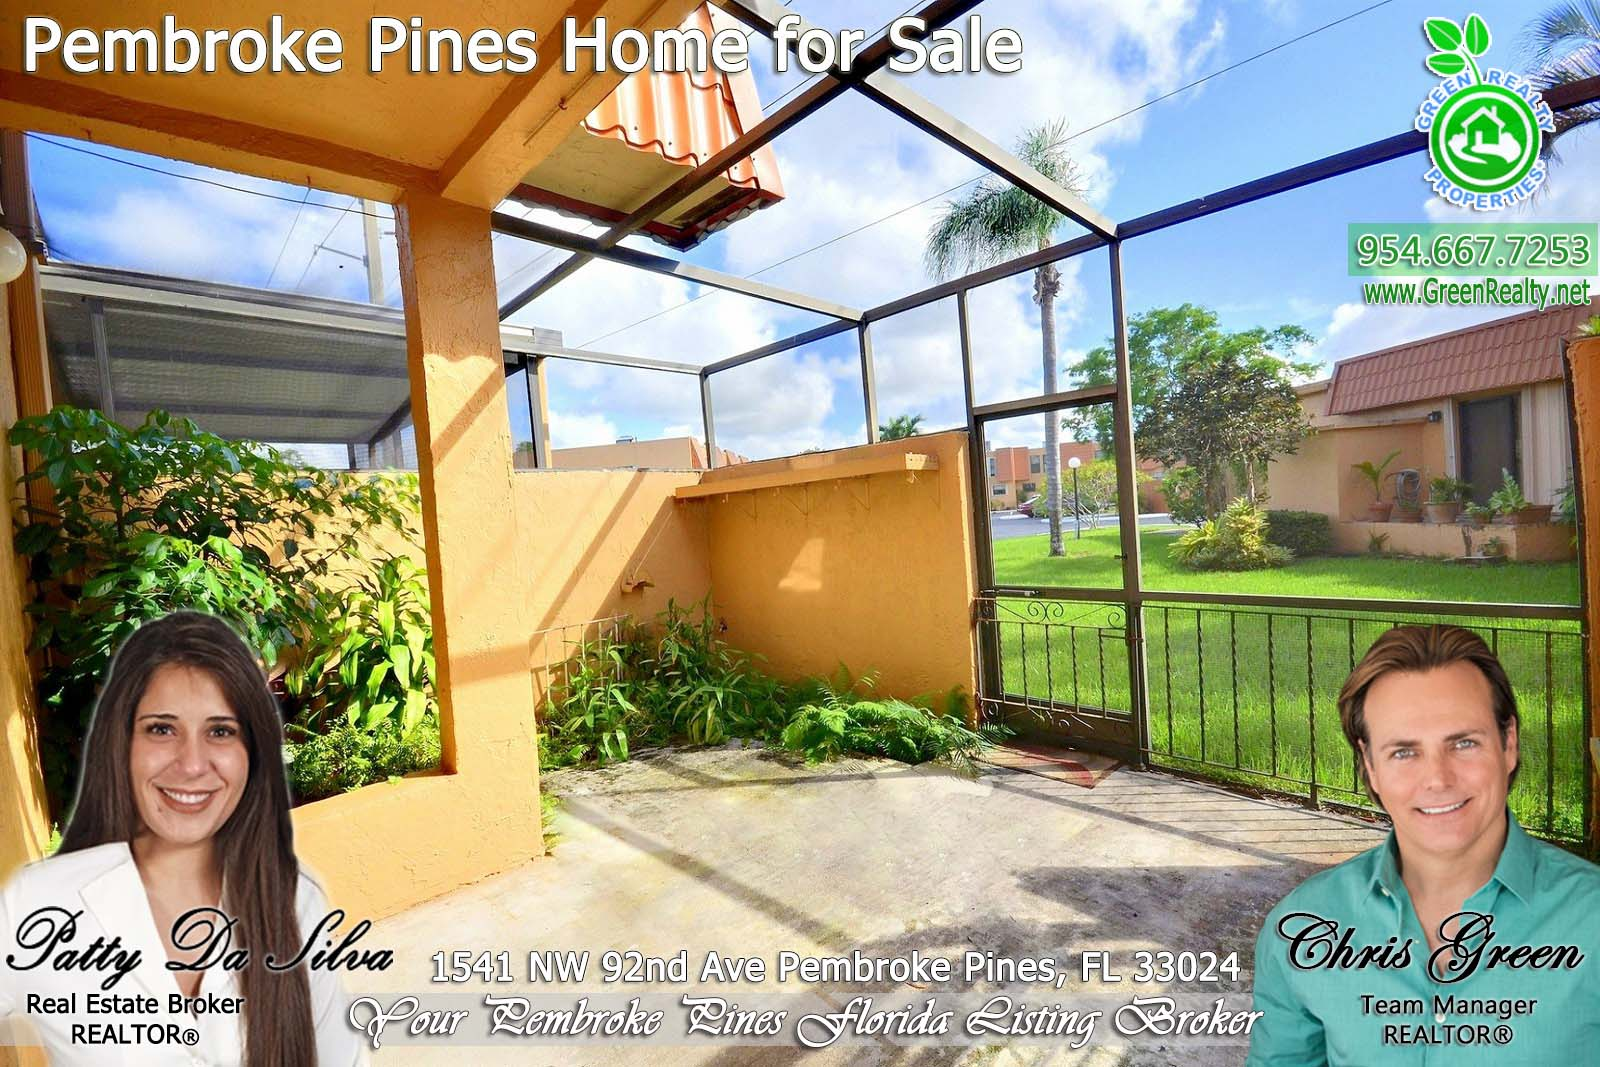 Pembroke Pines Real Estate Brokers